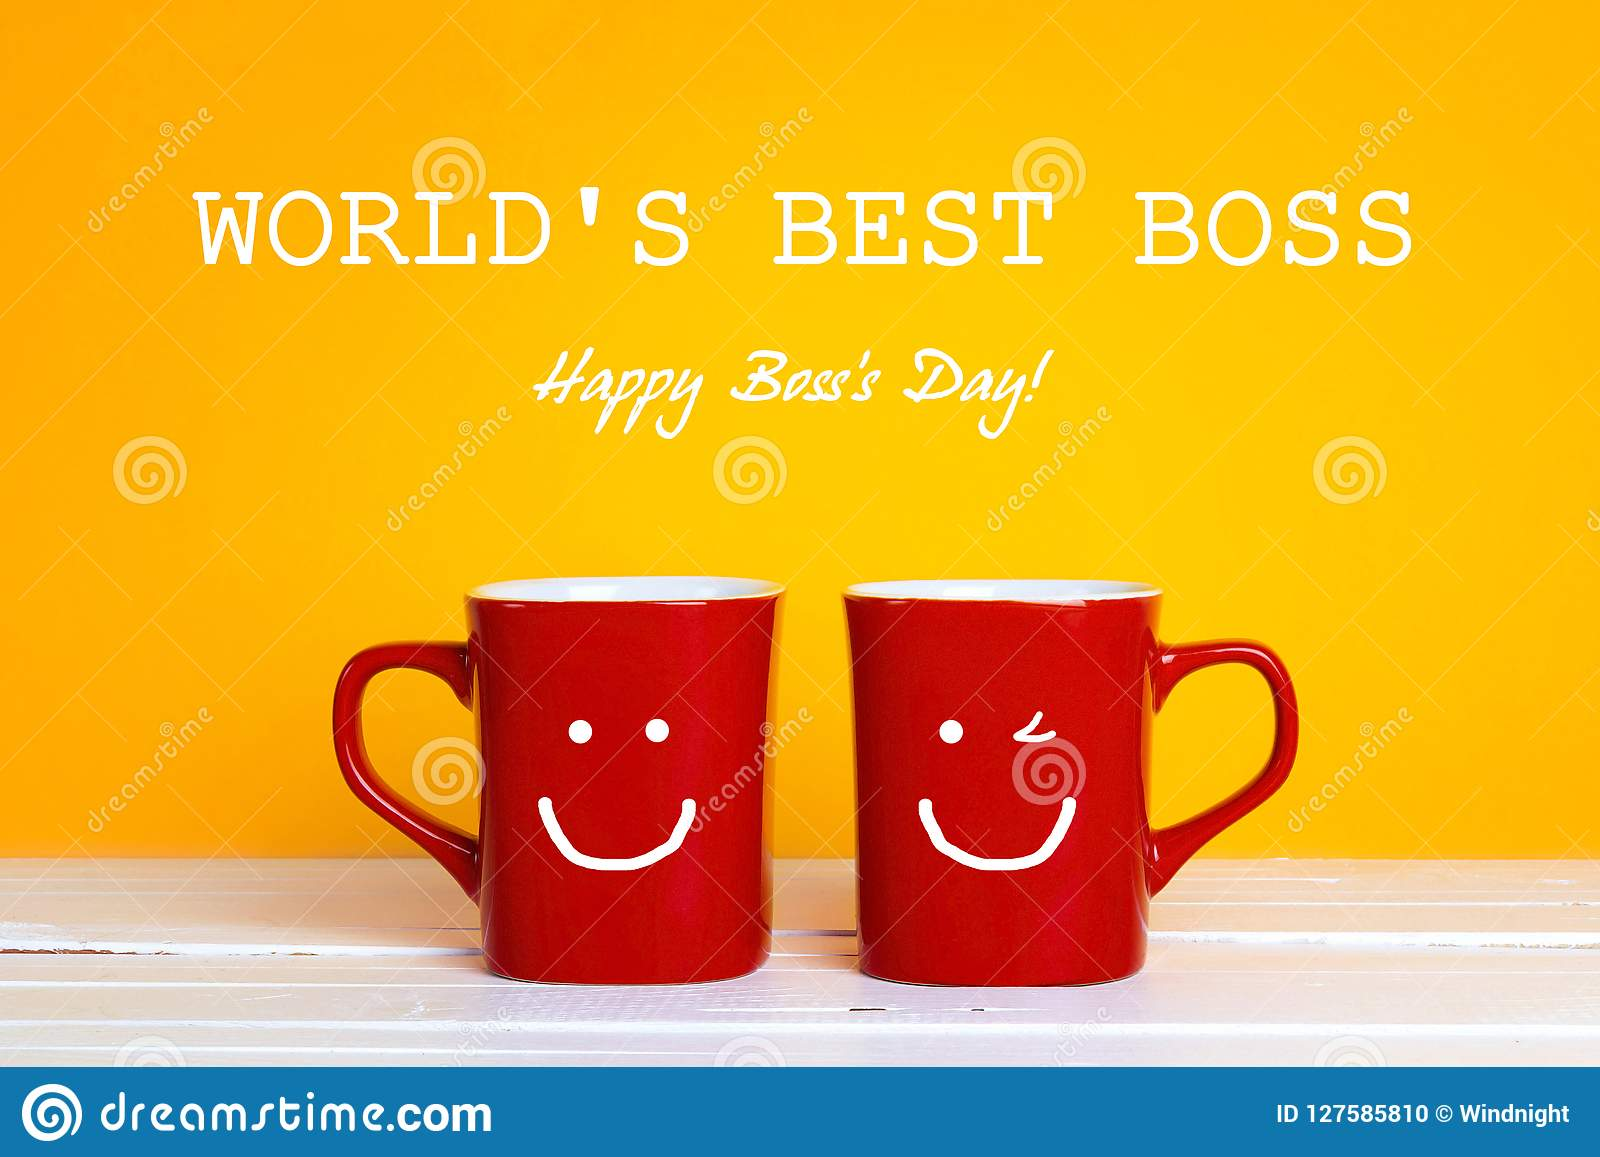 Boss Day Greeting Card With Two Red Coffee Mugs With A Smiling F